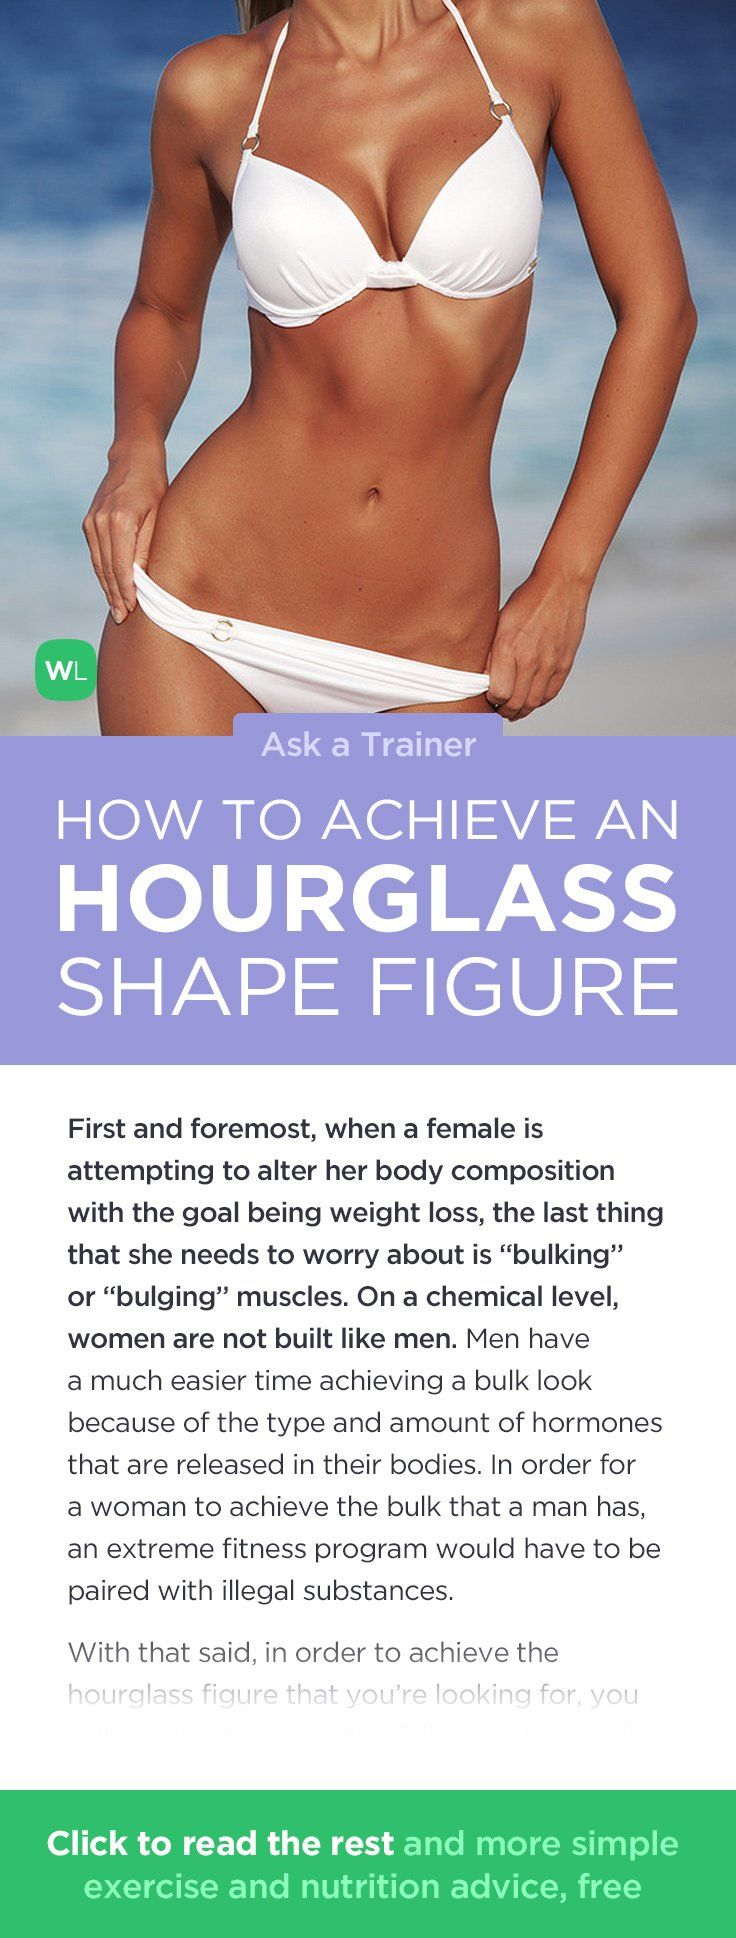 4 Workout Moves for an Hourglass Figure | ELLE - YouTube